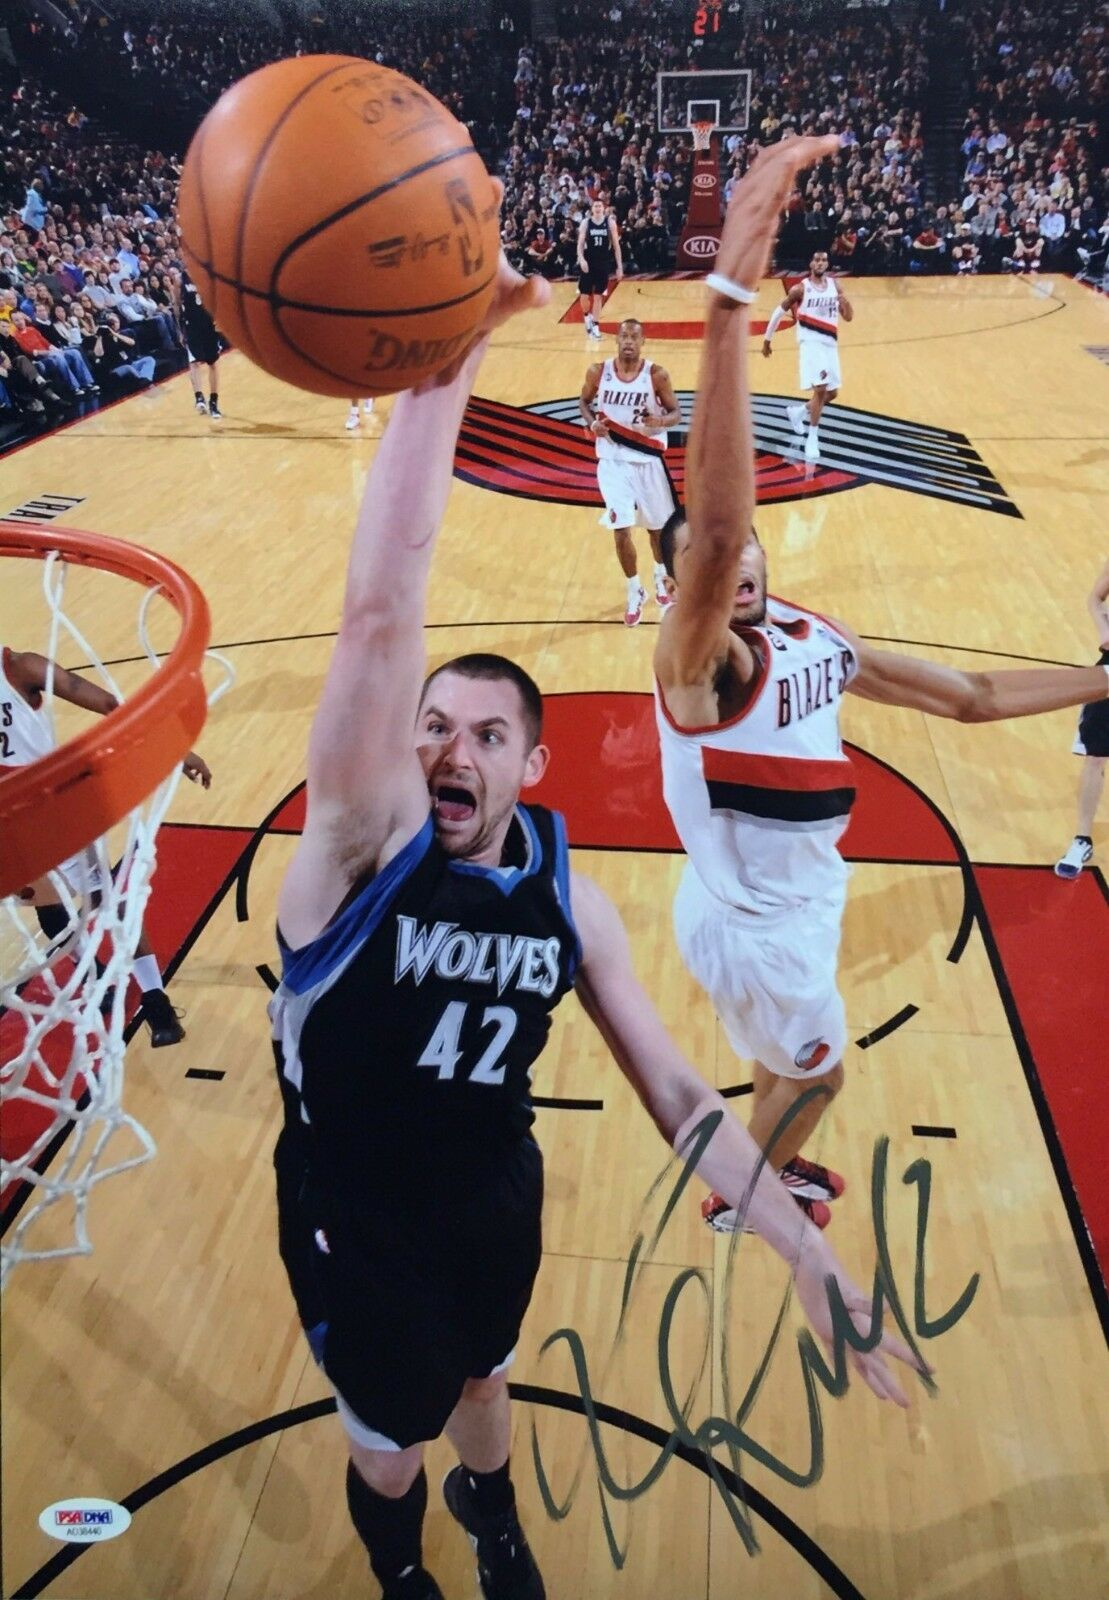 Kevin Love Signed Minnesota Timberwolves Basketball 12x18 Photo PSA AD38440